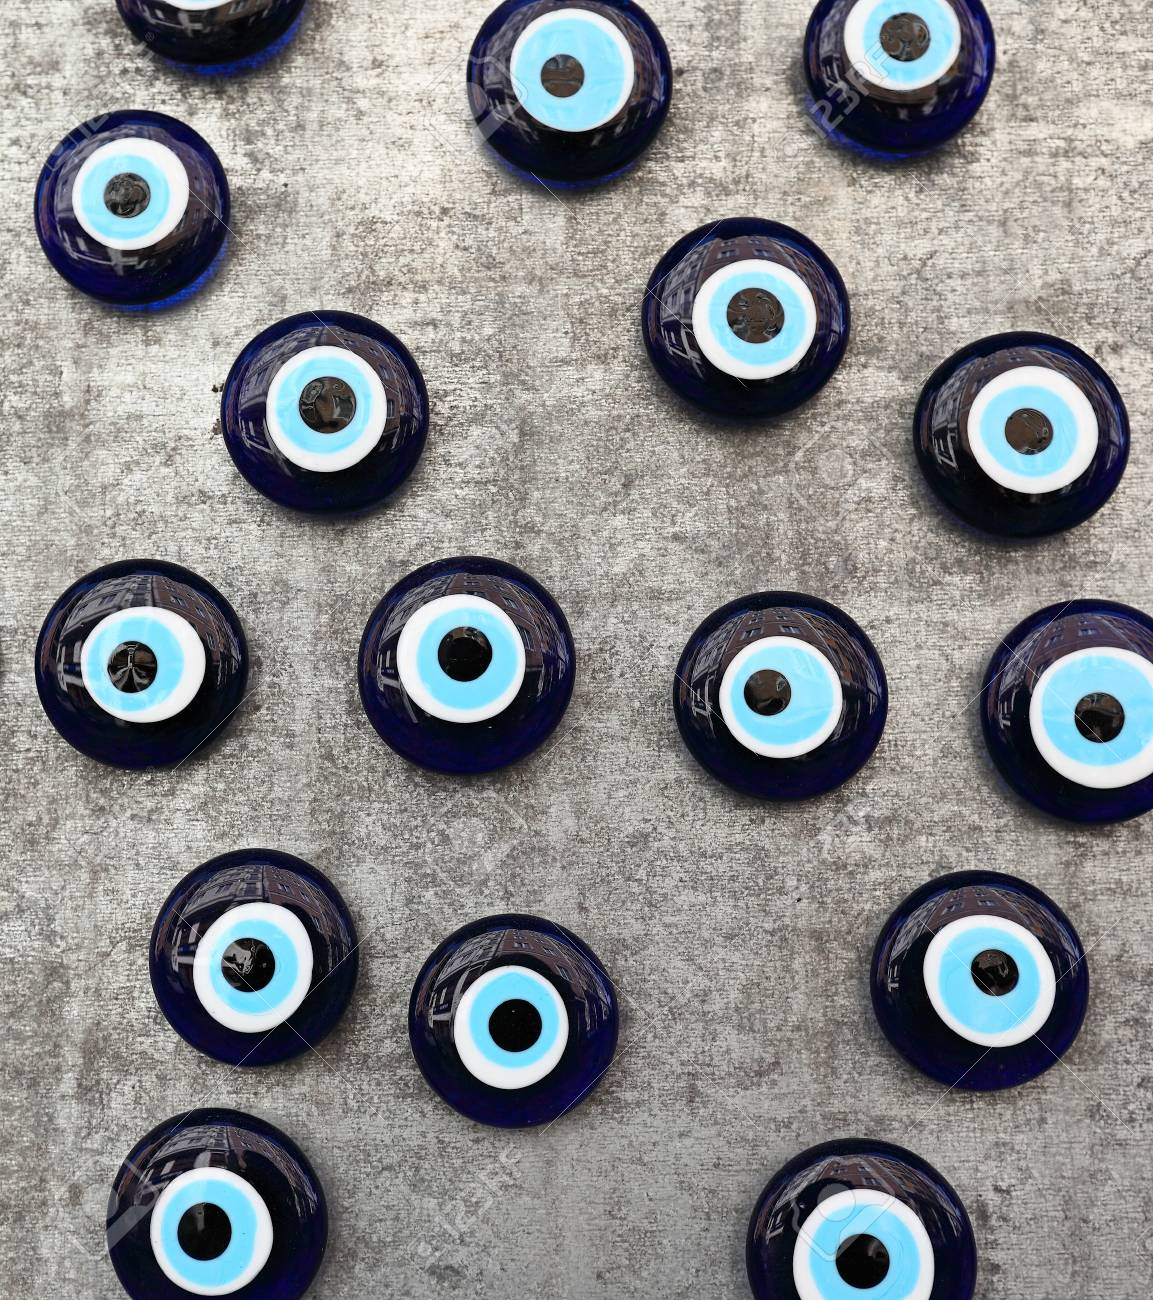 Turkish good luck and protection charm: The evil eye